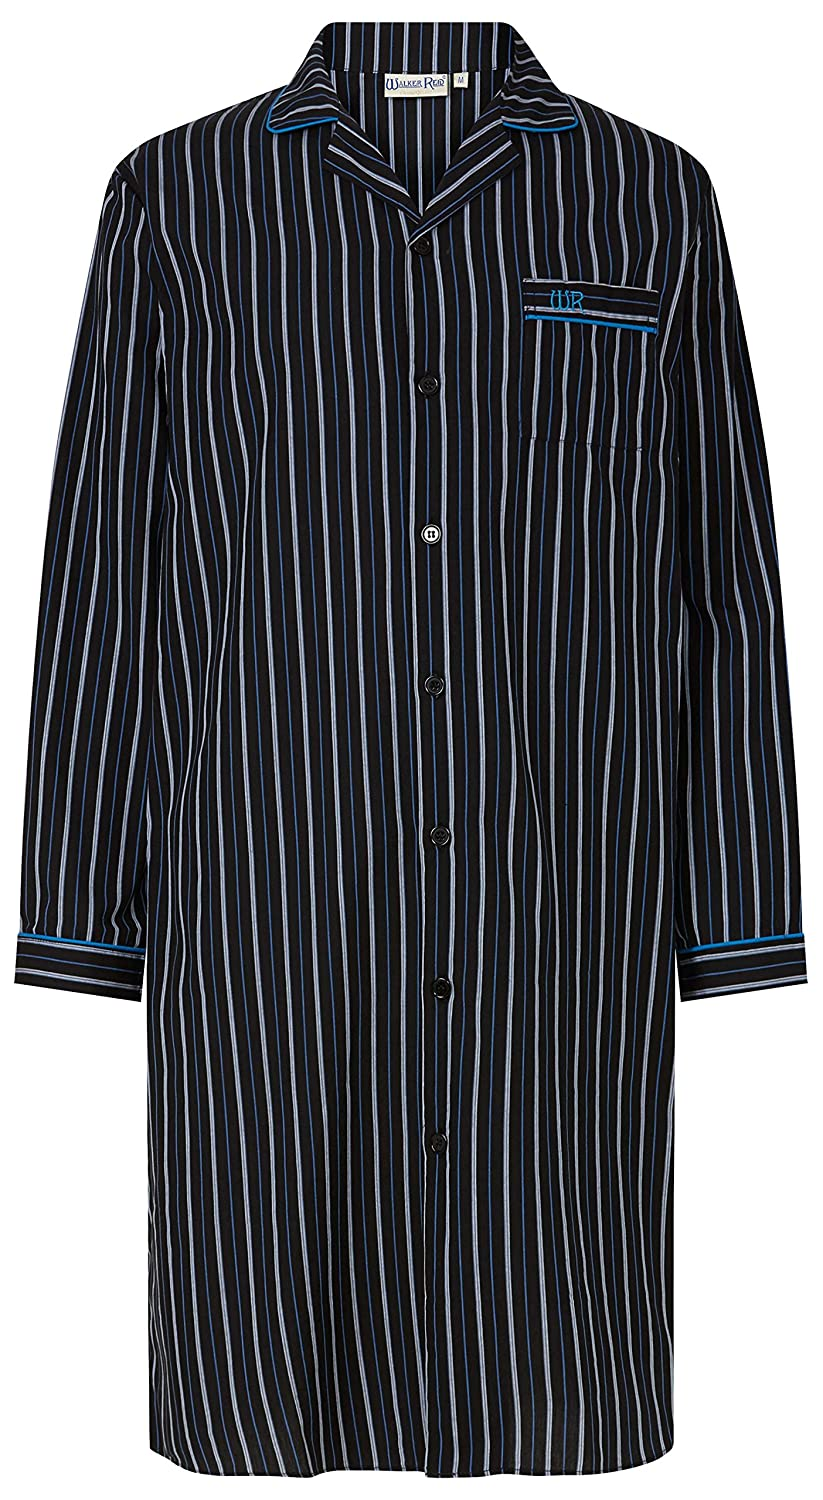 Mens Black Striped Print 100% Cotton 42 106cm Long Sleeve Button Up Collared Nightshirt